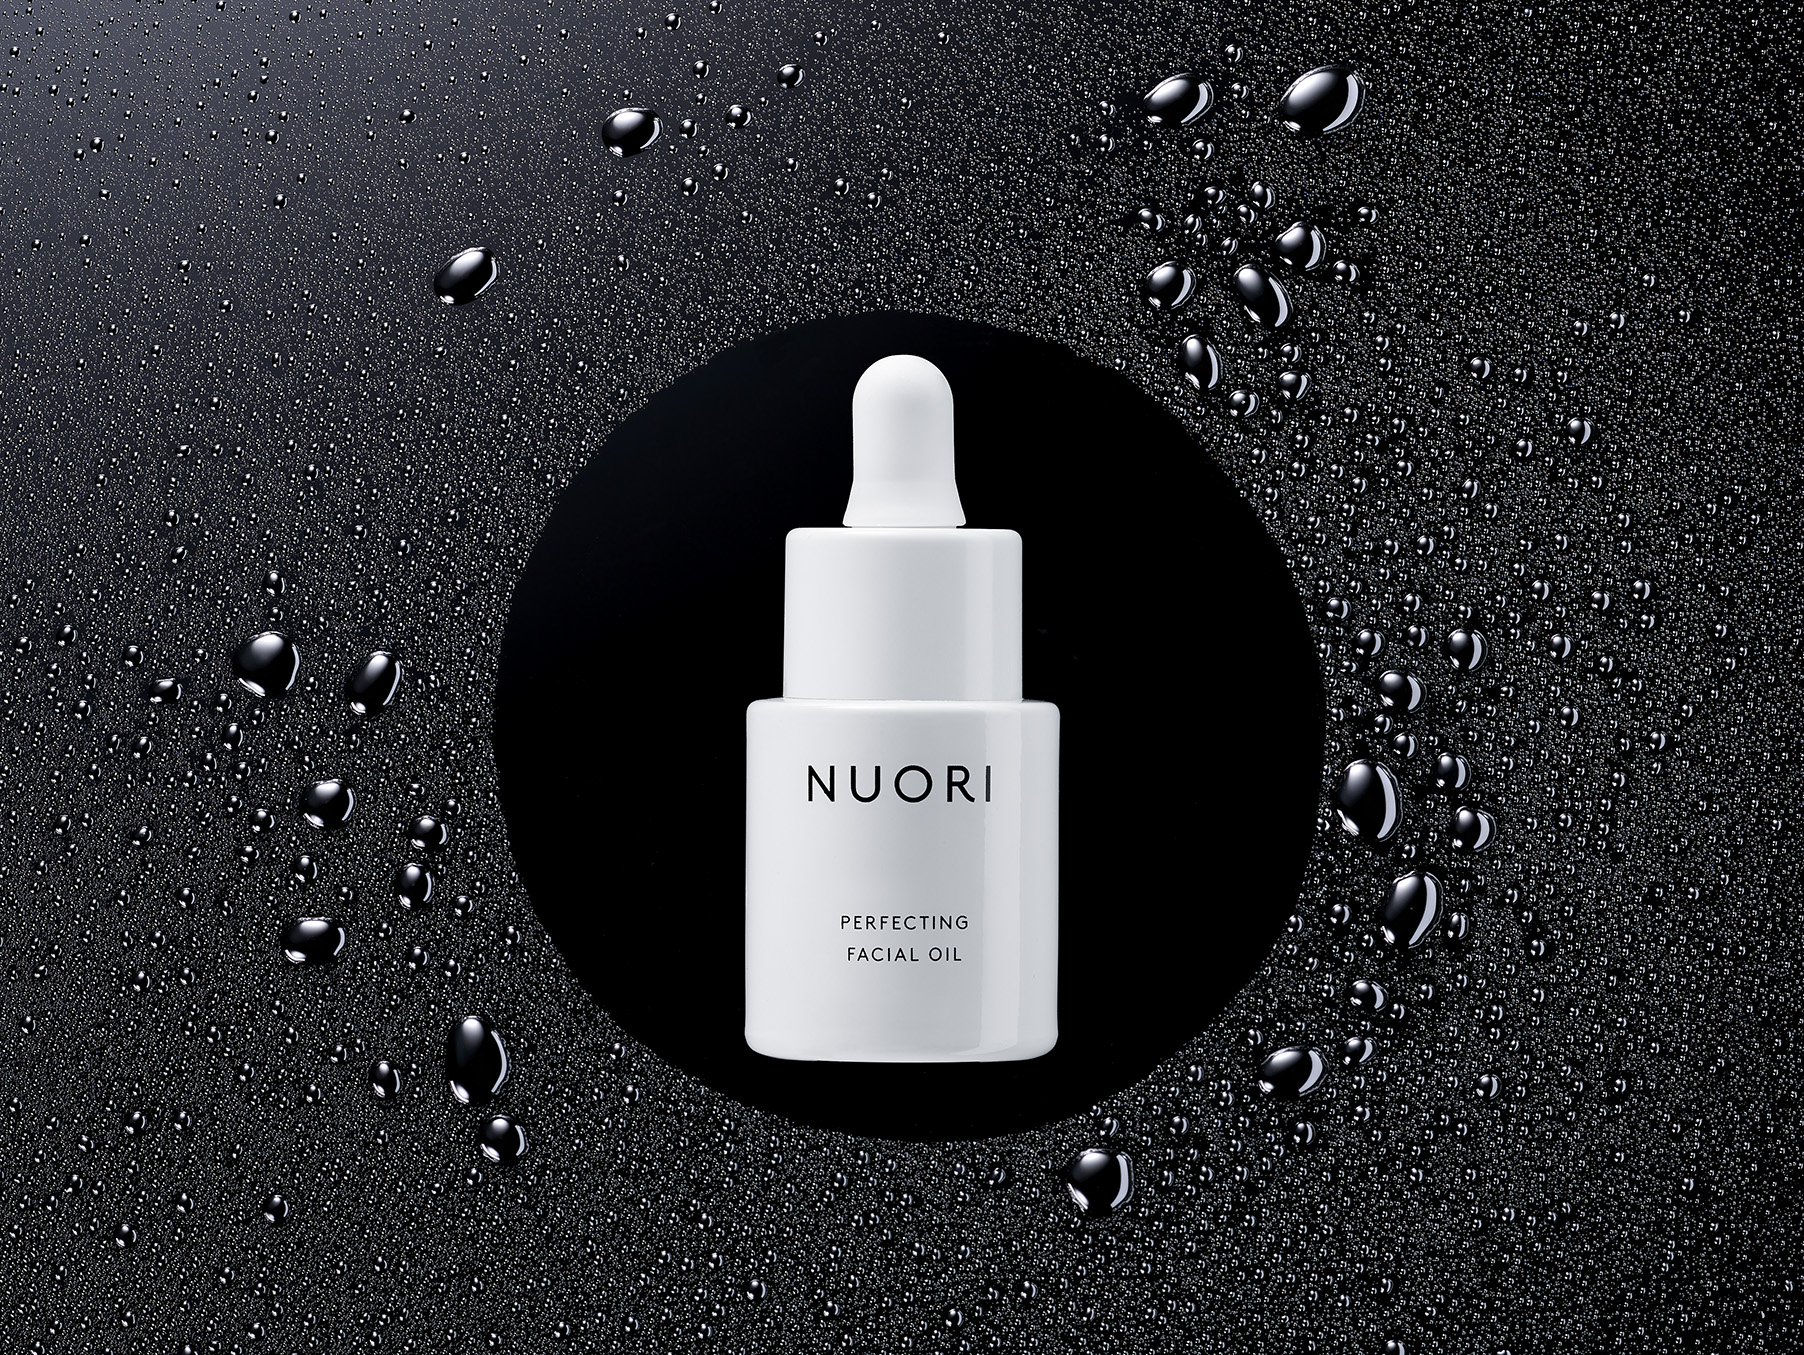 NUORI_OIL_BOTTLE_0483